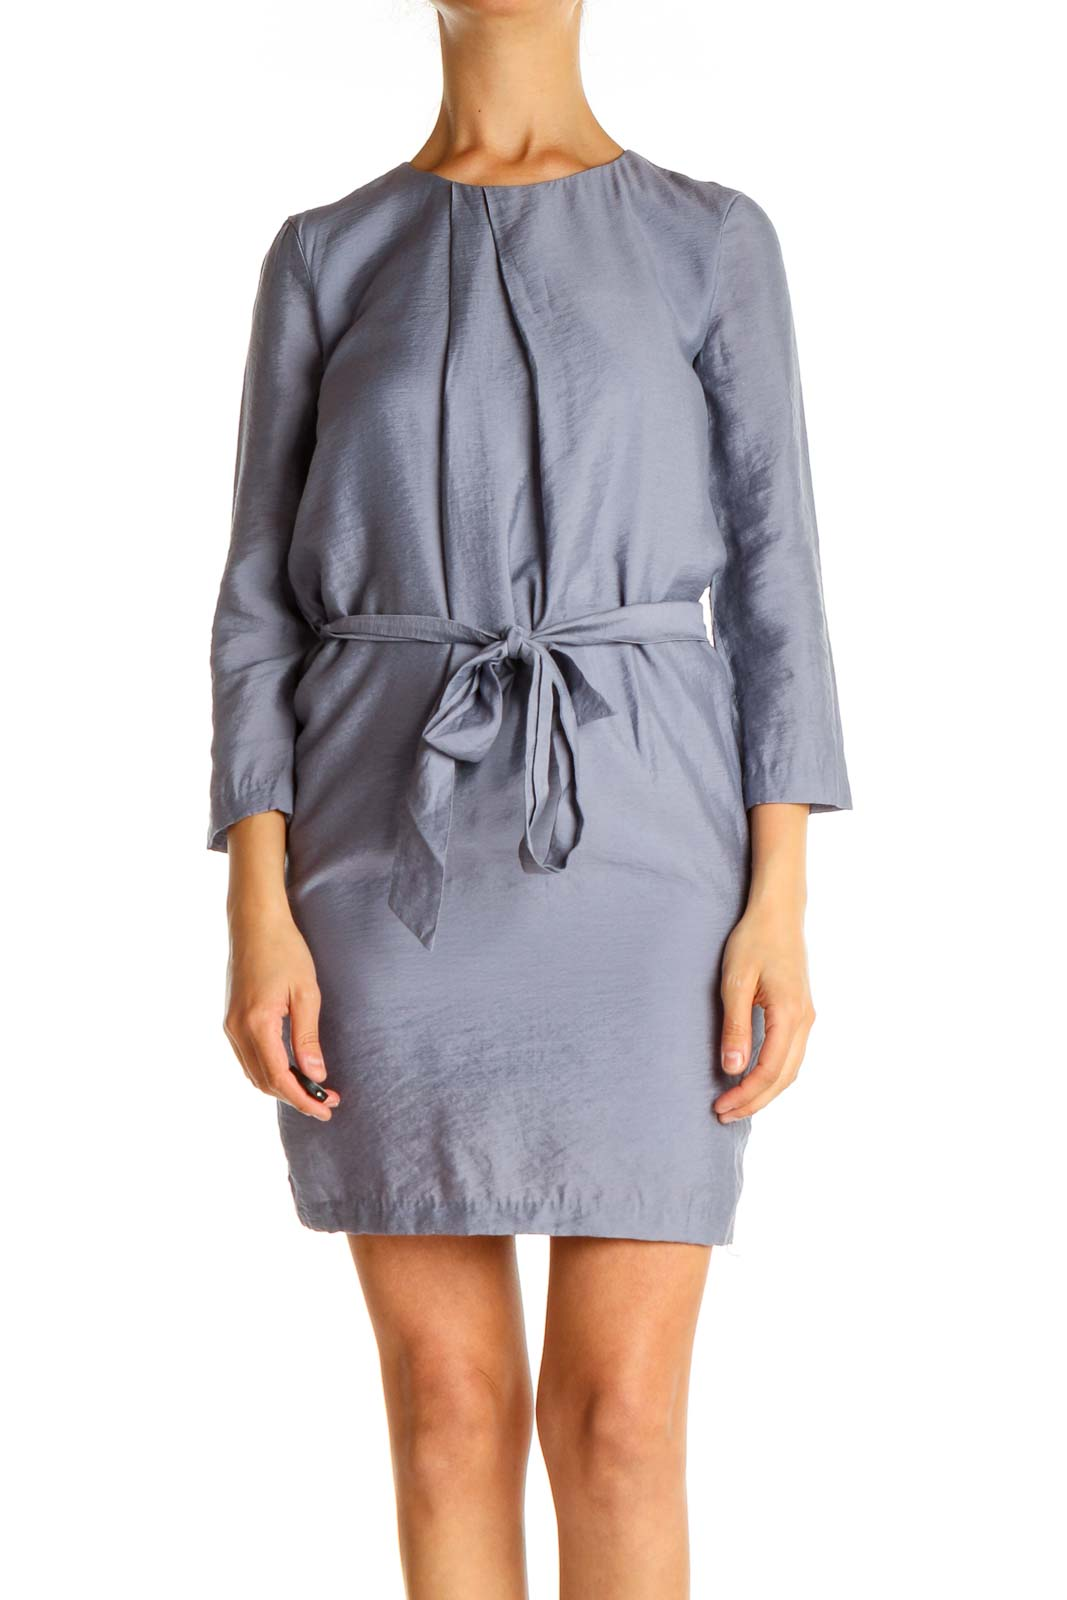 Gray Solid Tie Sheath Dress Front